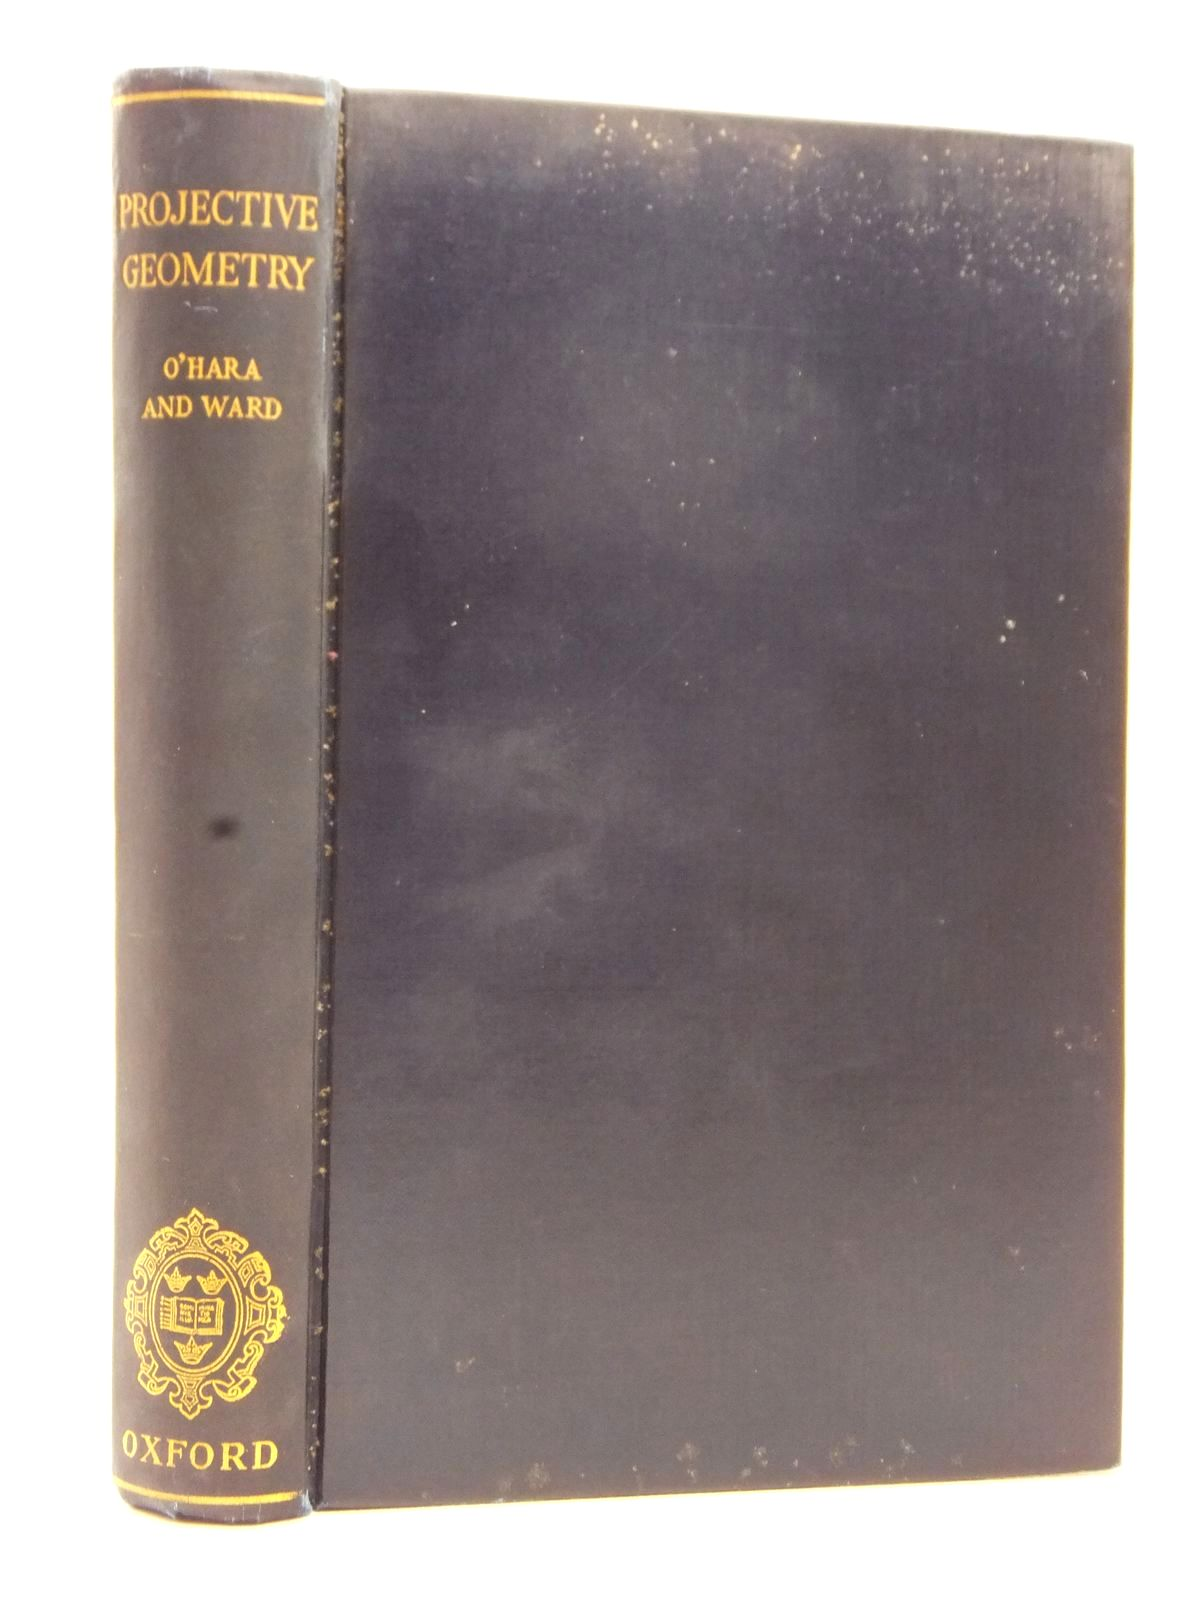 Photo of AN INTRODUCTION TO PROJECTIVE GEOMETRY written by O'Hara, C.W.<br />Ward, D.R. published by Oxford at the Clarendon Press (STOCK CODE: 1609354)  for sale by Stella & Rose's Books